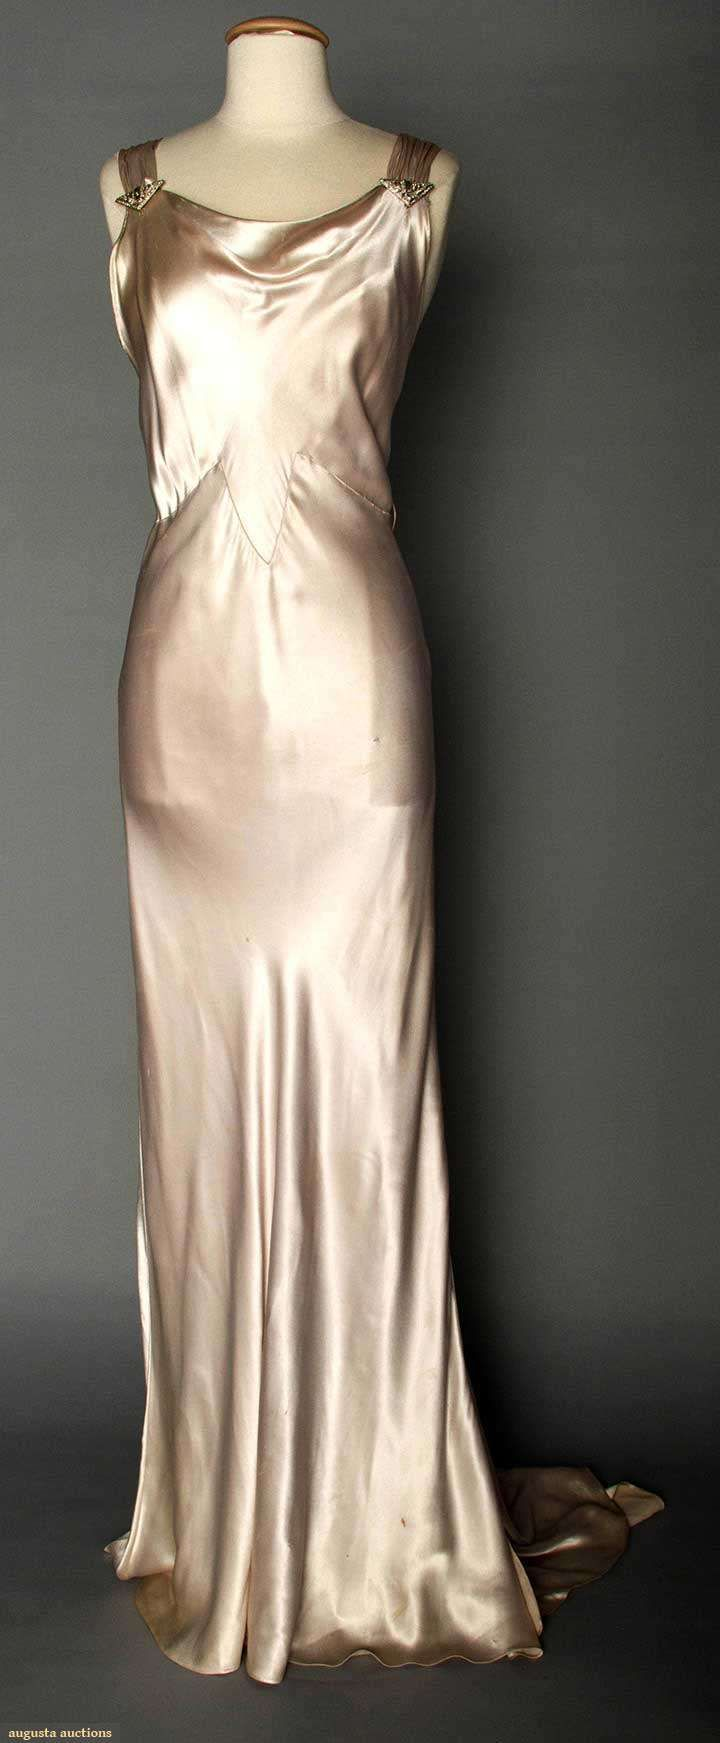 "~SILVER SATIN EVENING GOWN, 1930s~ Pale lavender/silver silk charmeuse, bias-cut, sleeveless, cowl neckline, open back, jeweled Deco elements on shoulder straps & at CB, floating trained back panel, labeled ""NRA Code, Made Under Dress Code Authority PHB038577"", B 34""-36"", H 35""-38"", L 62""-72"", (belt missing)"